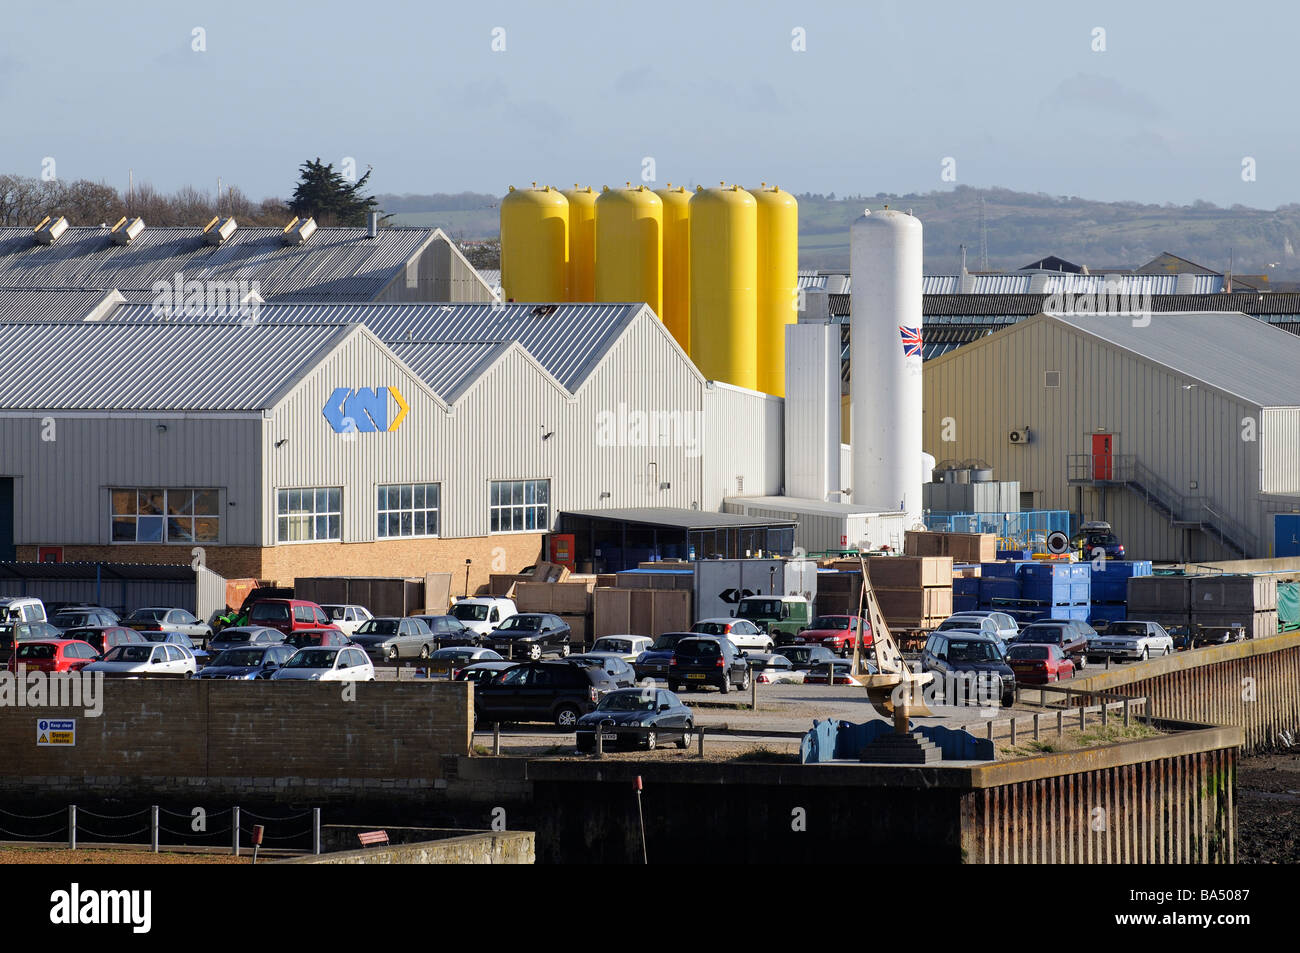 GKN Aerospace Services factory on the waterfront in East Cowes Isle of Wight England UK - Stock Image